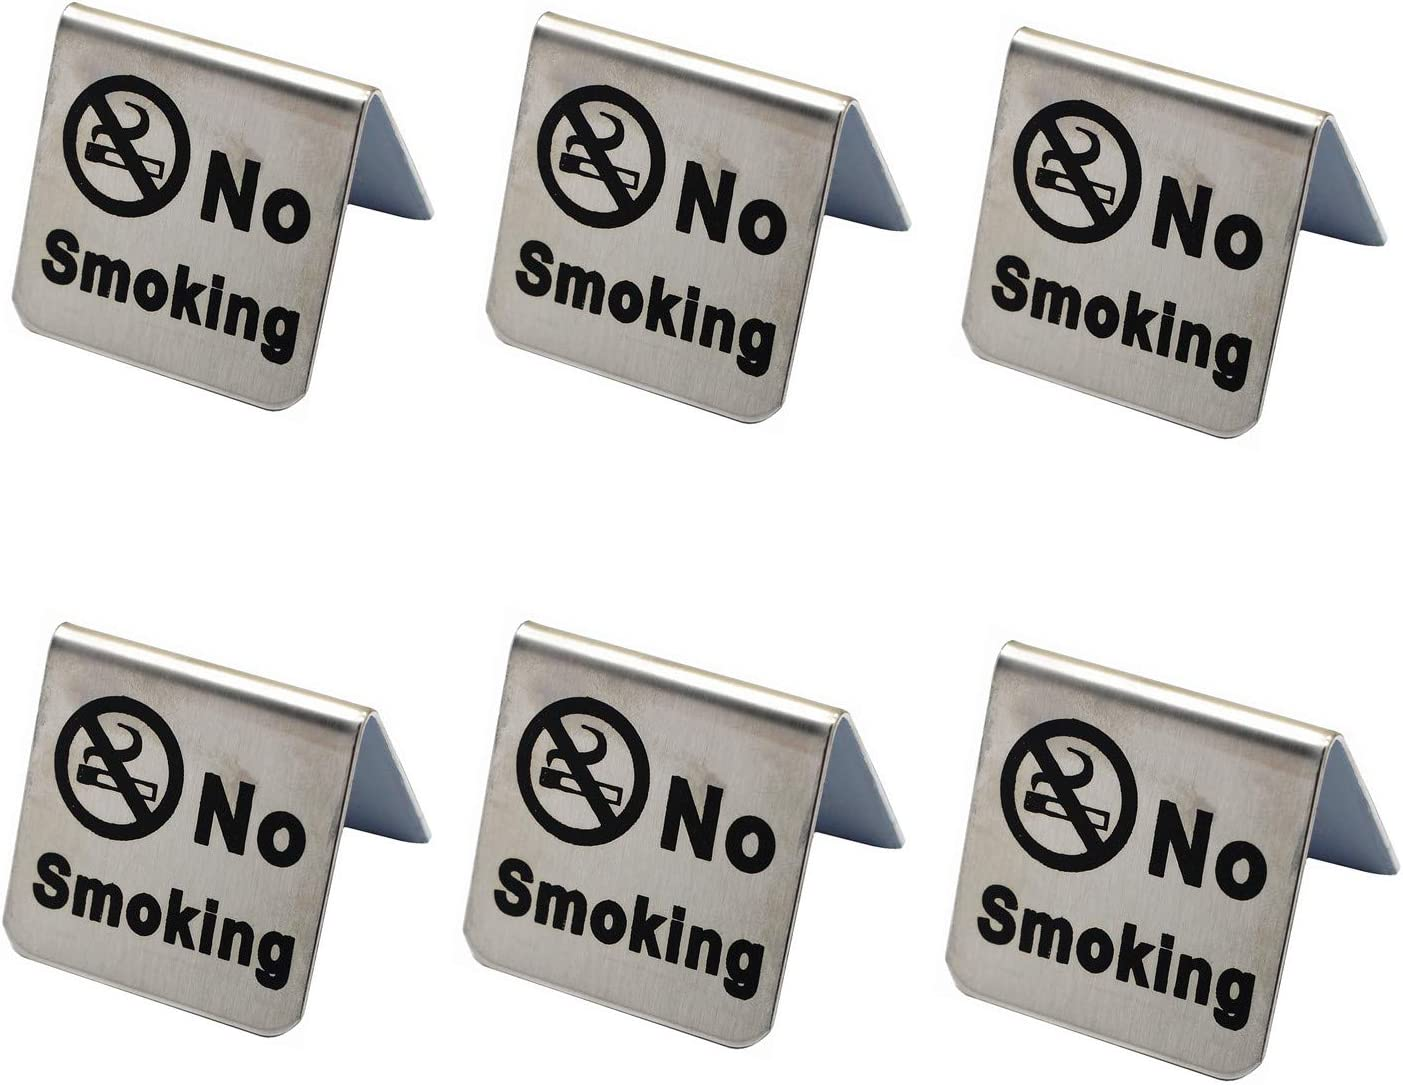 ZHU YU CHUN Small Stainless Steel No Smoking Table Sign, Non-Smoking Desk Logo Indicator, 2 by 2 Inch (Pack of 6)